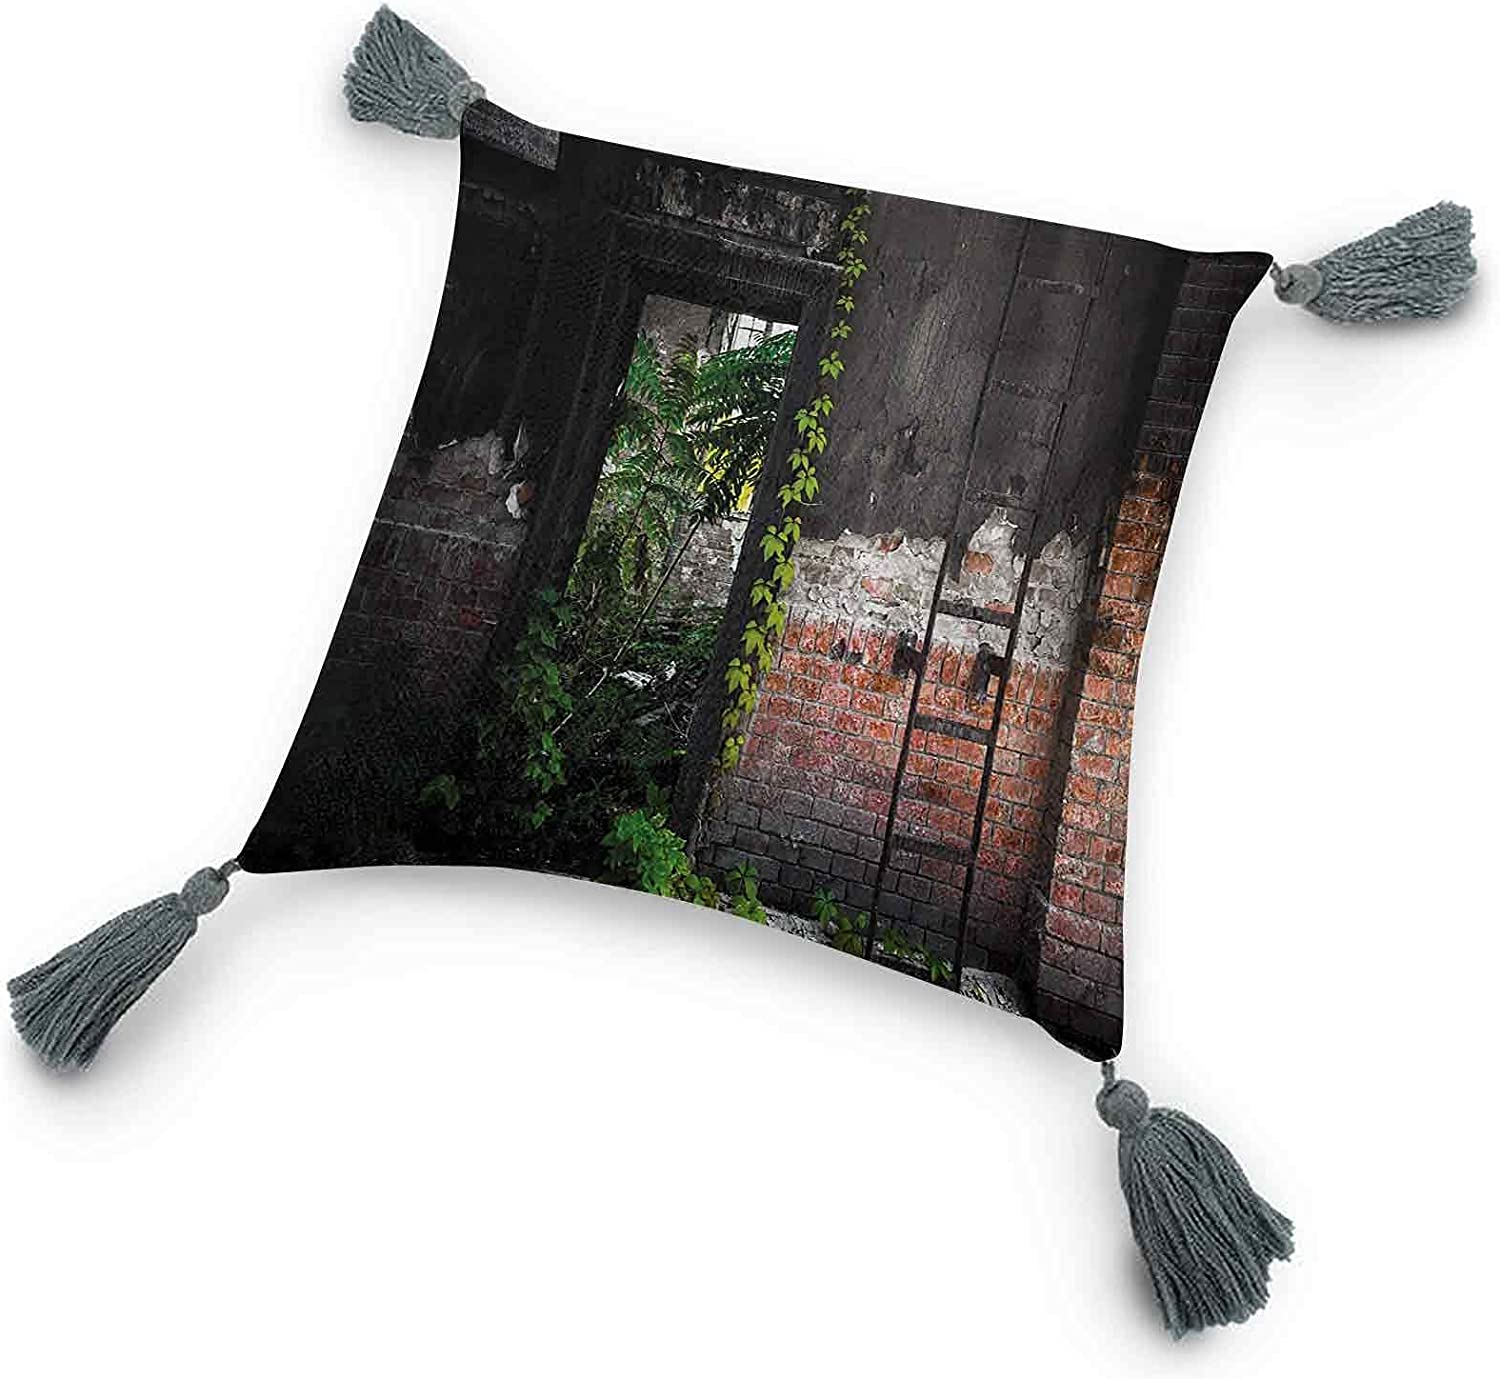 Industrial Throw Pillow with TasselsOld Door Opening in a Desolate Industry Building Brick Wall with Ivy Plants Accent Decor Pillow Home Bed Living Room Shell GiftMulticolor